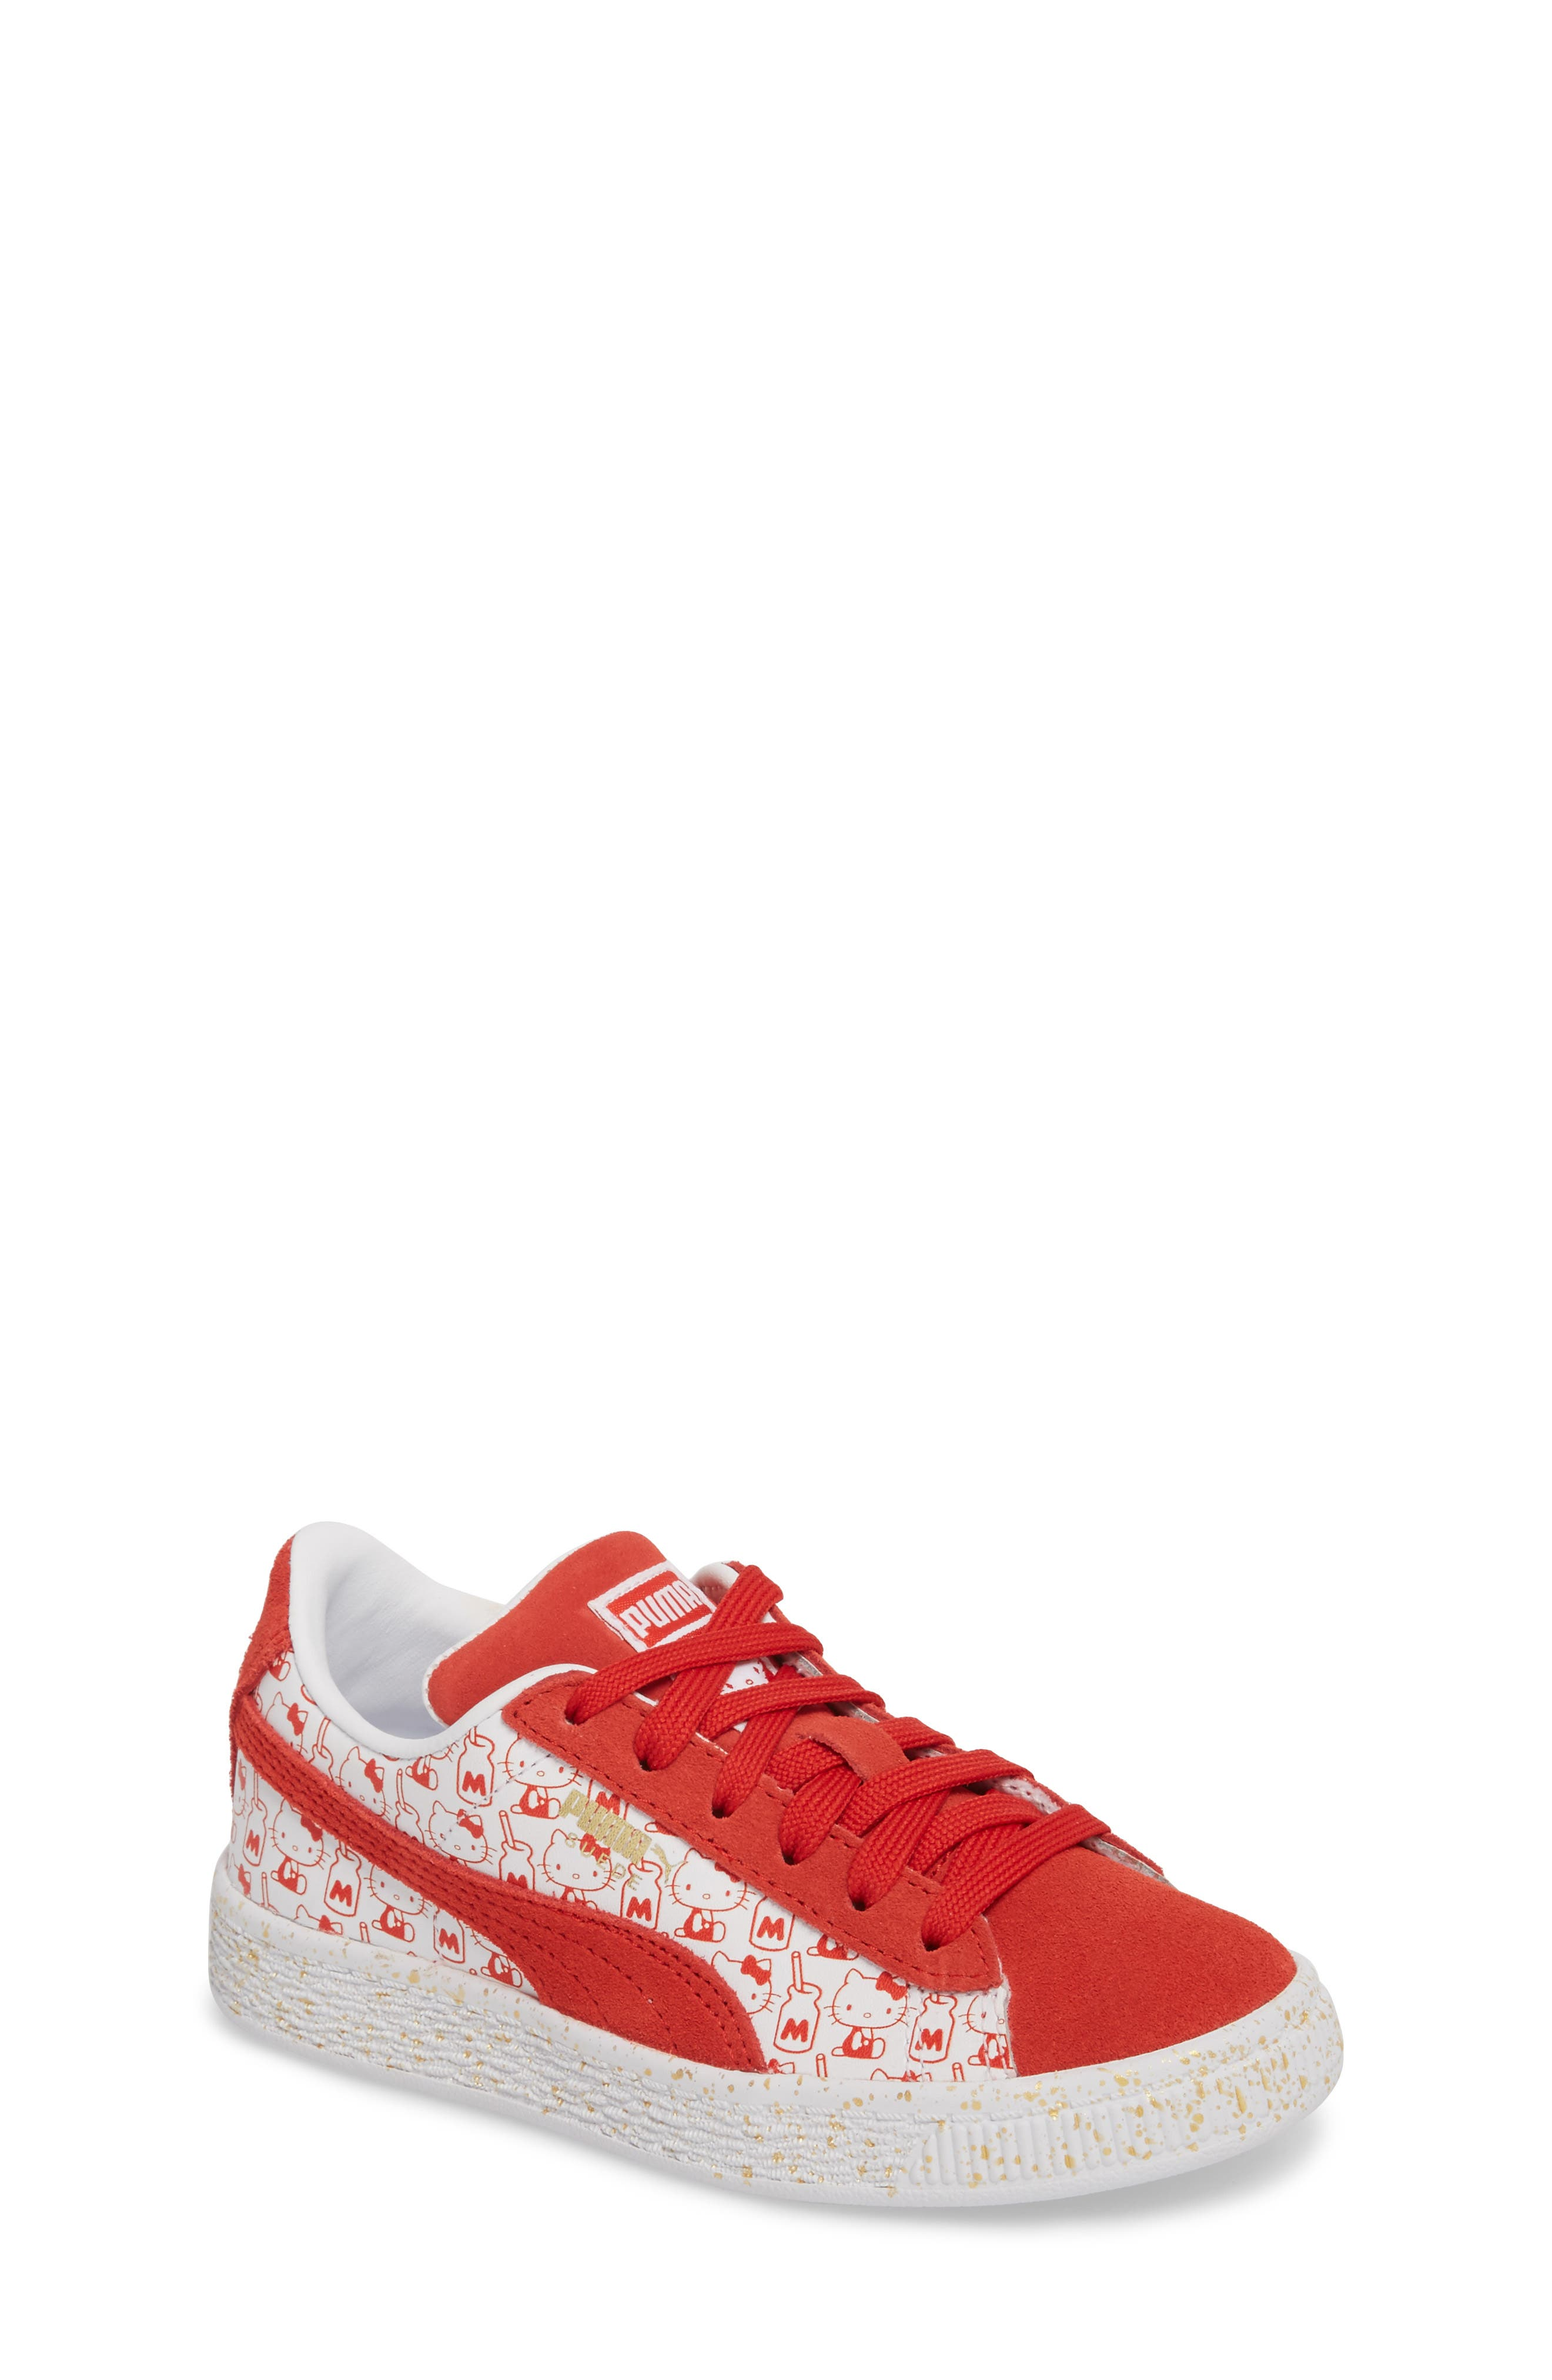 x Hello Kitty Suede Classic Sneaker,                             Main thumbnail 1, color,                             600